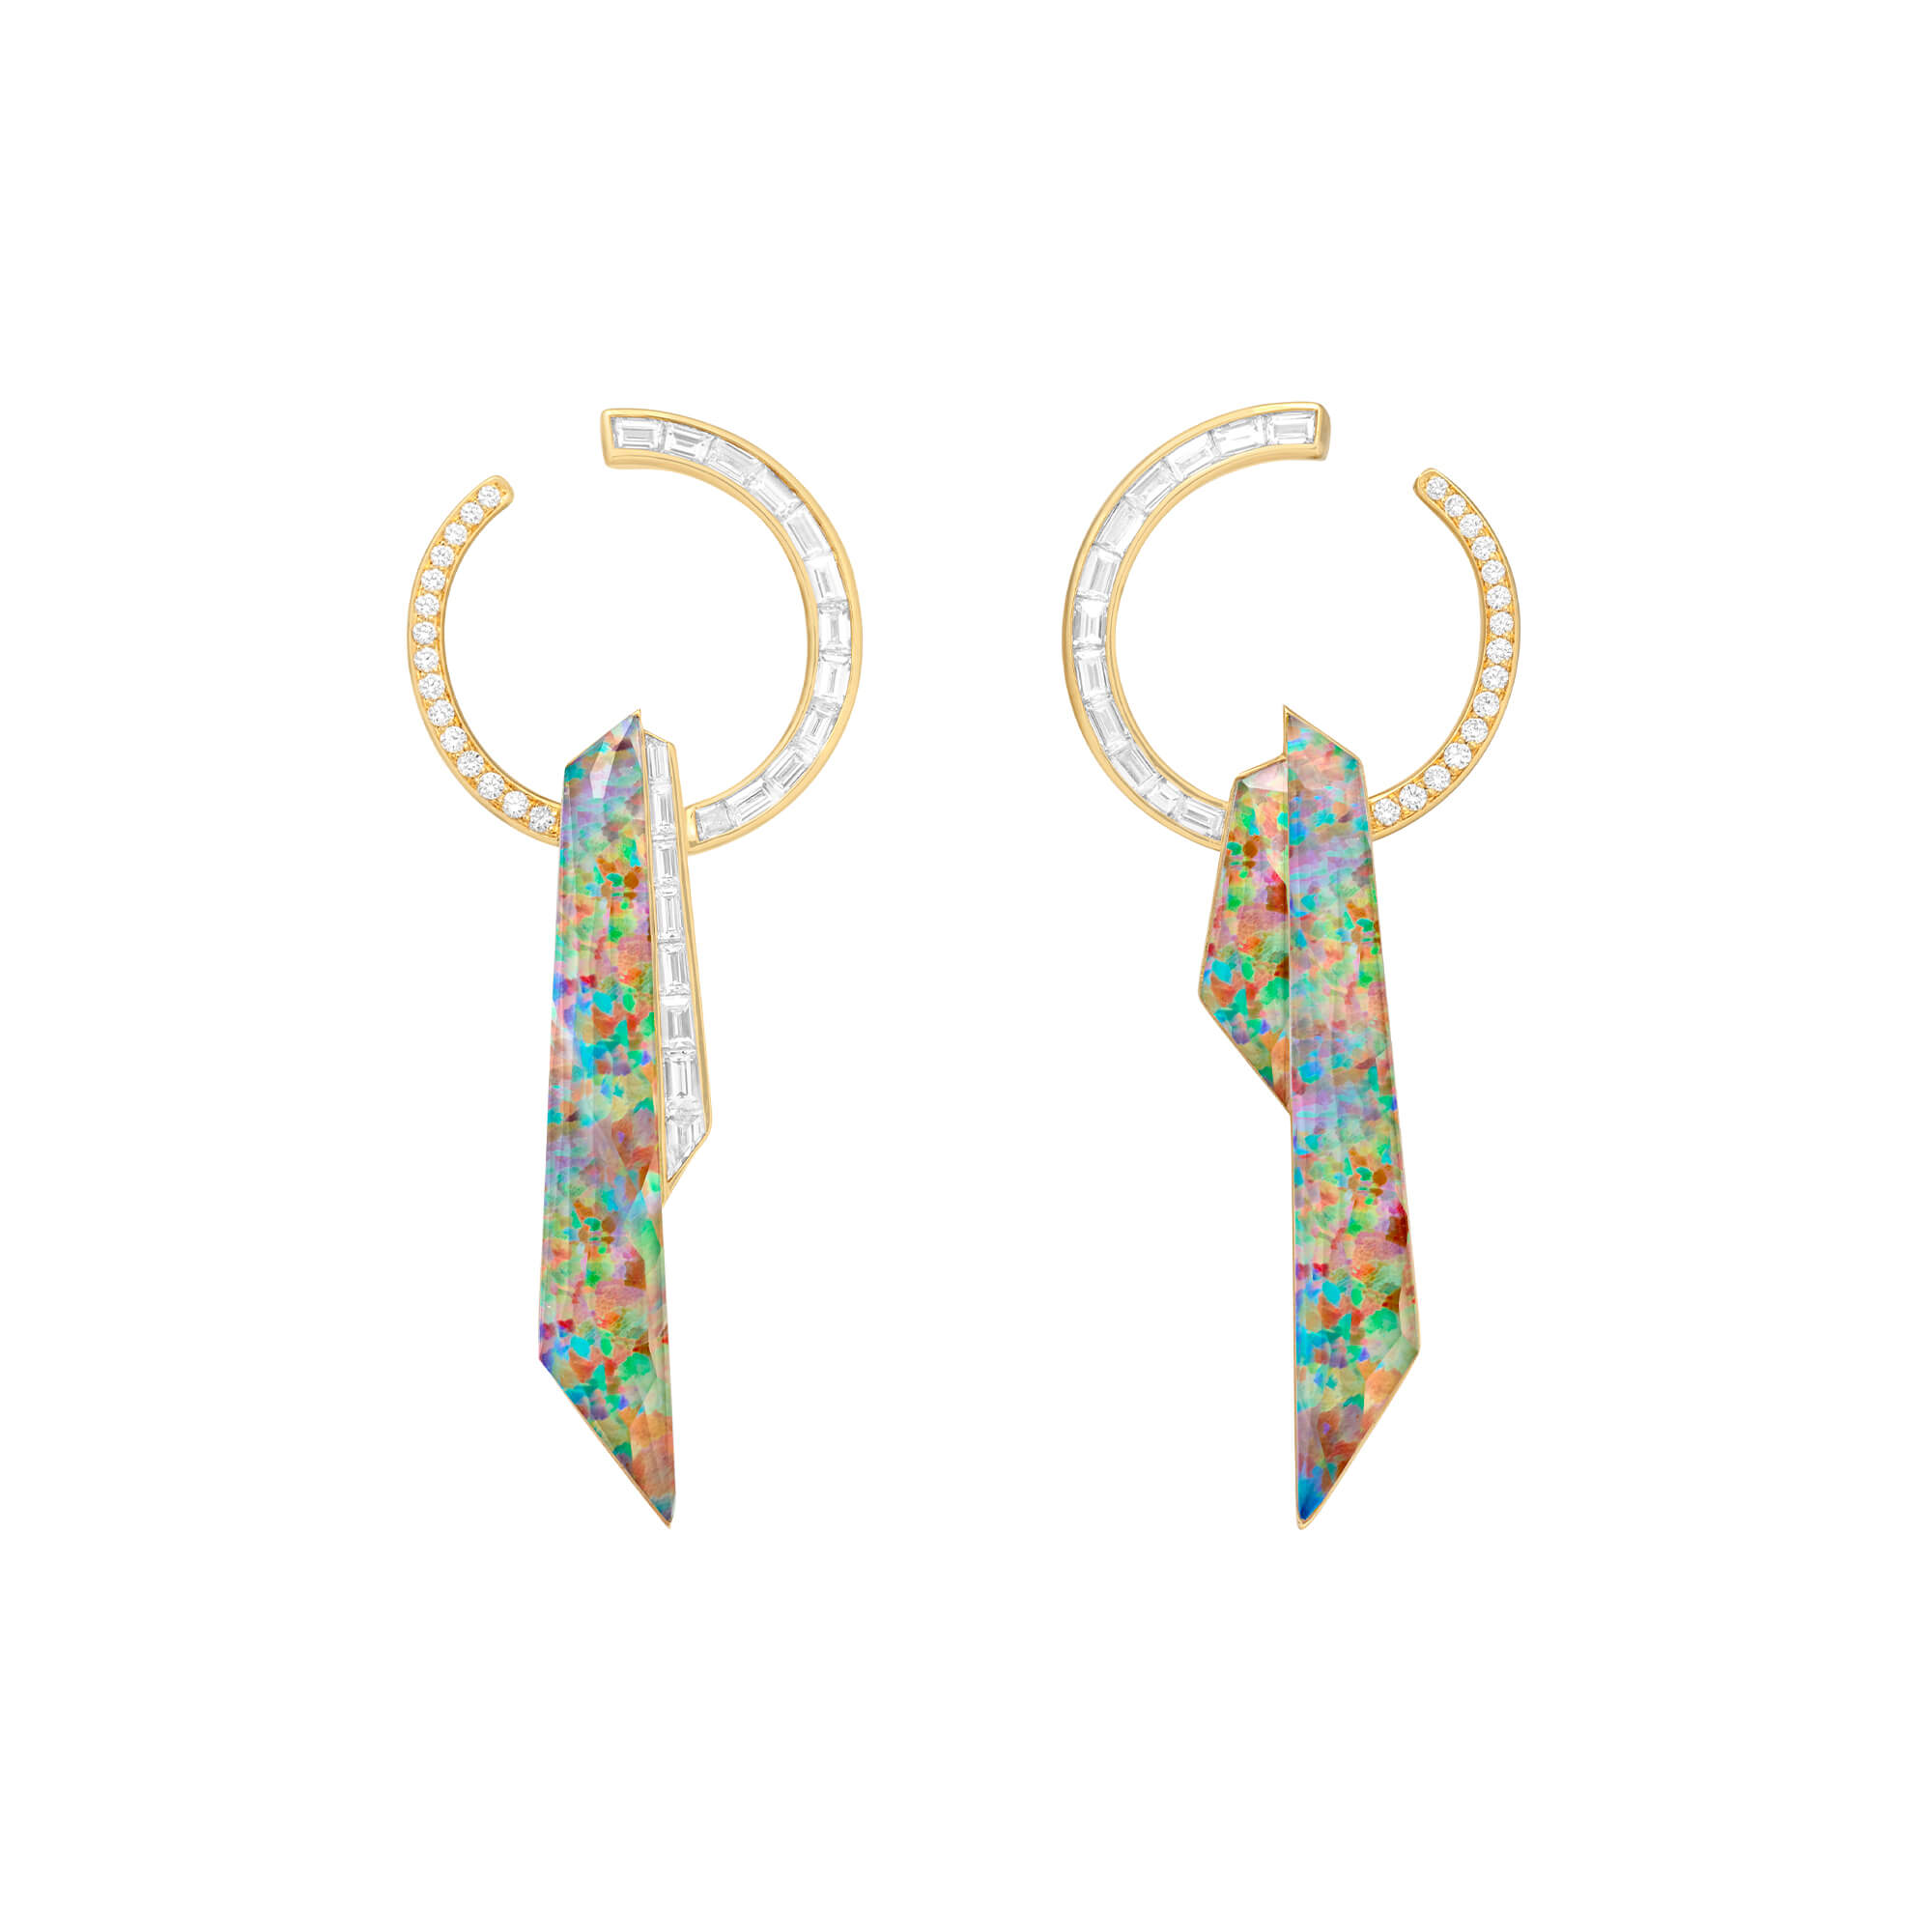 Fire Opalescent Crystal Haze Shard Hoop Earrings | CH₂